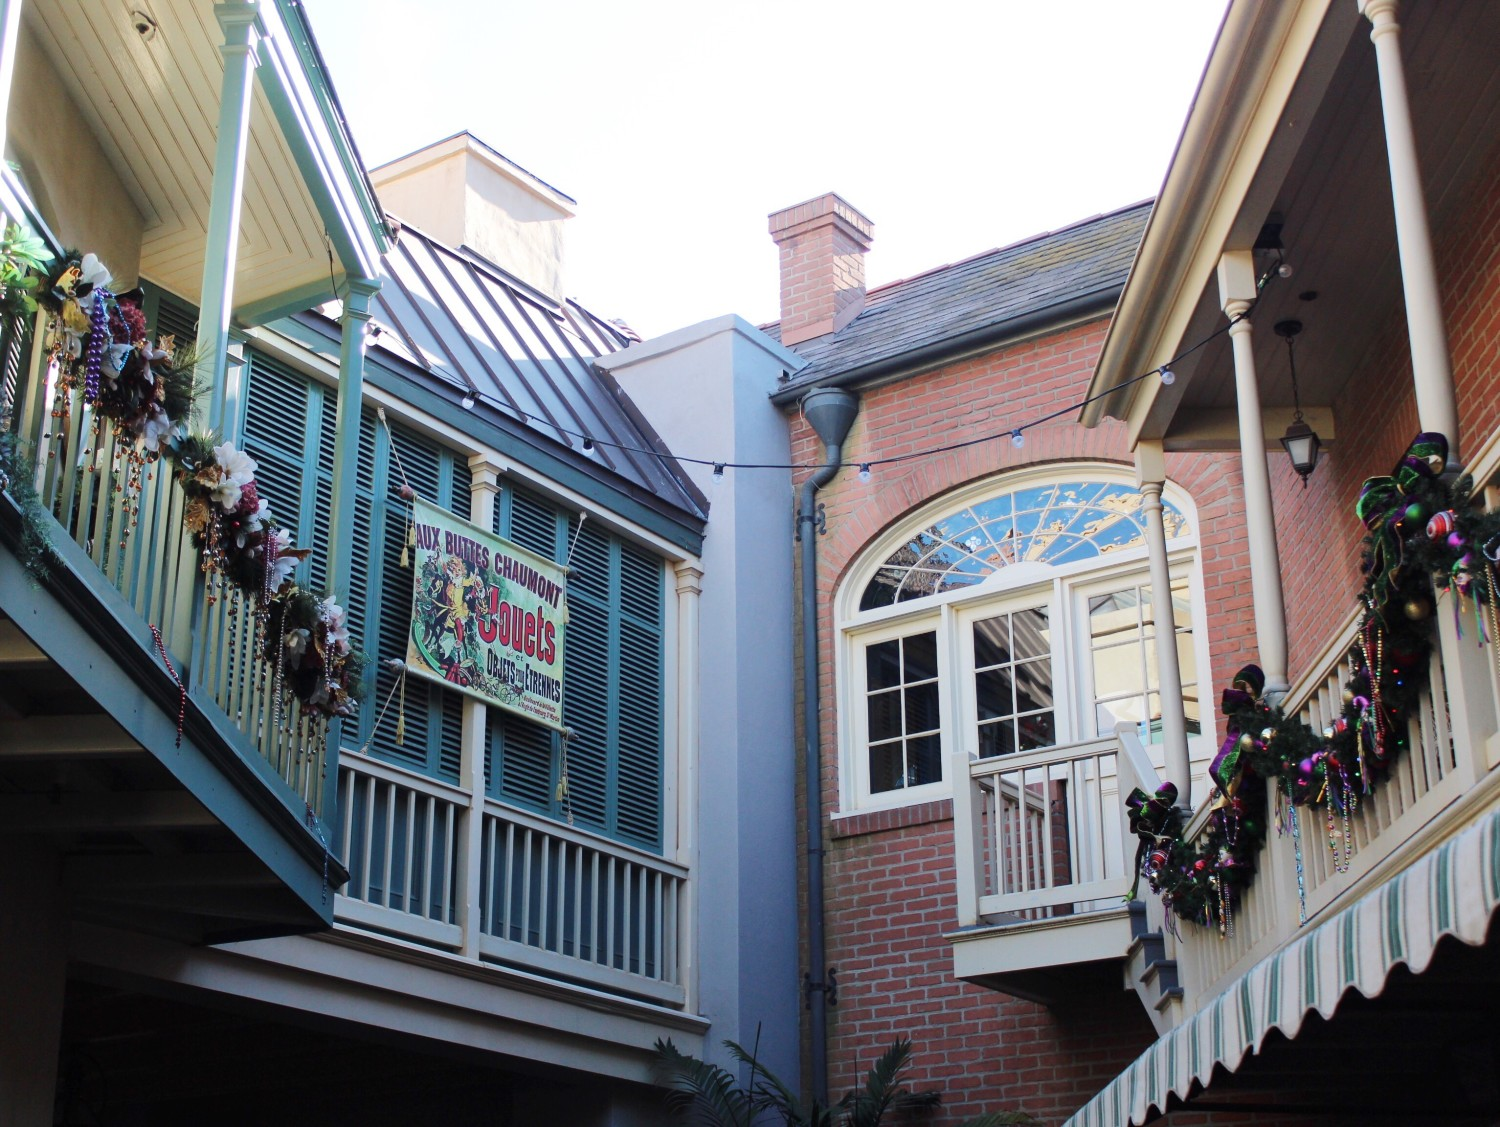 Disneyland During the holidays New Orleans Square